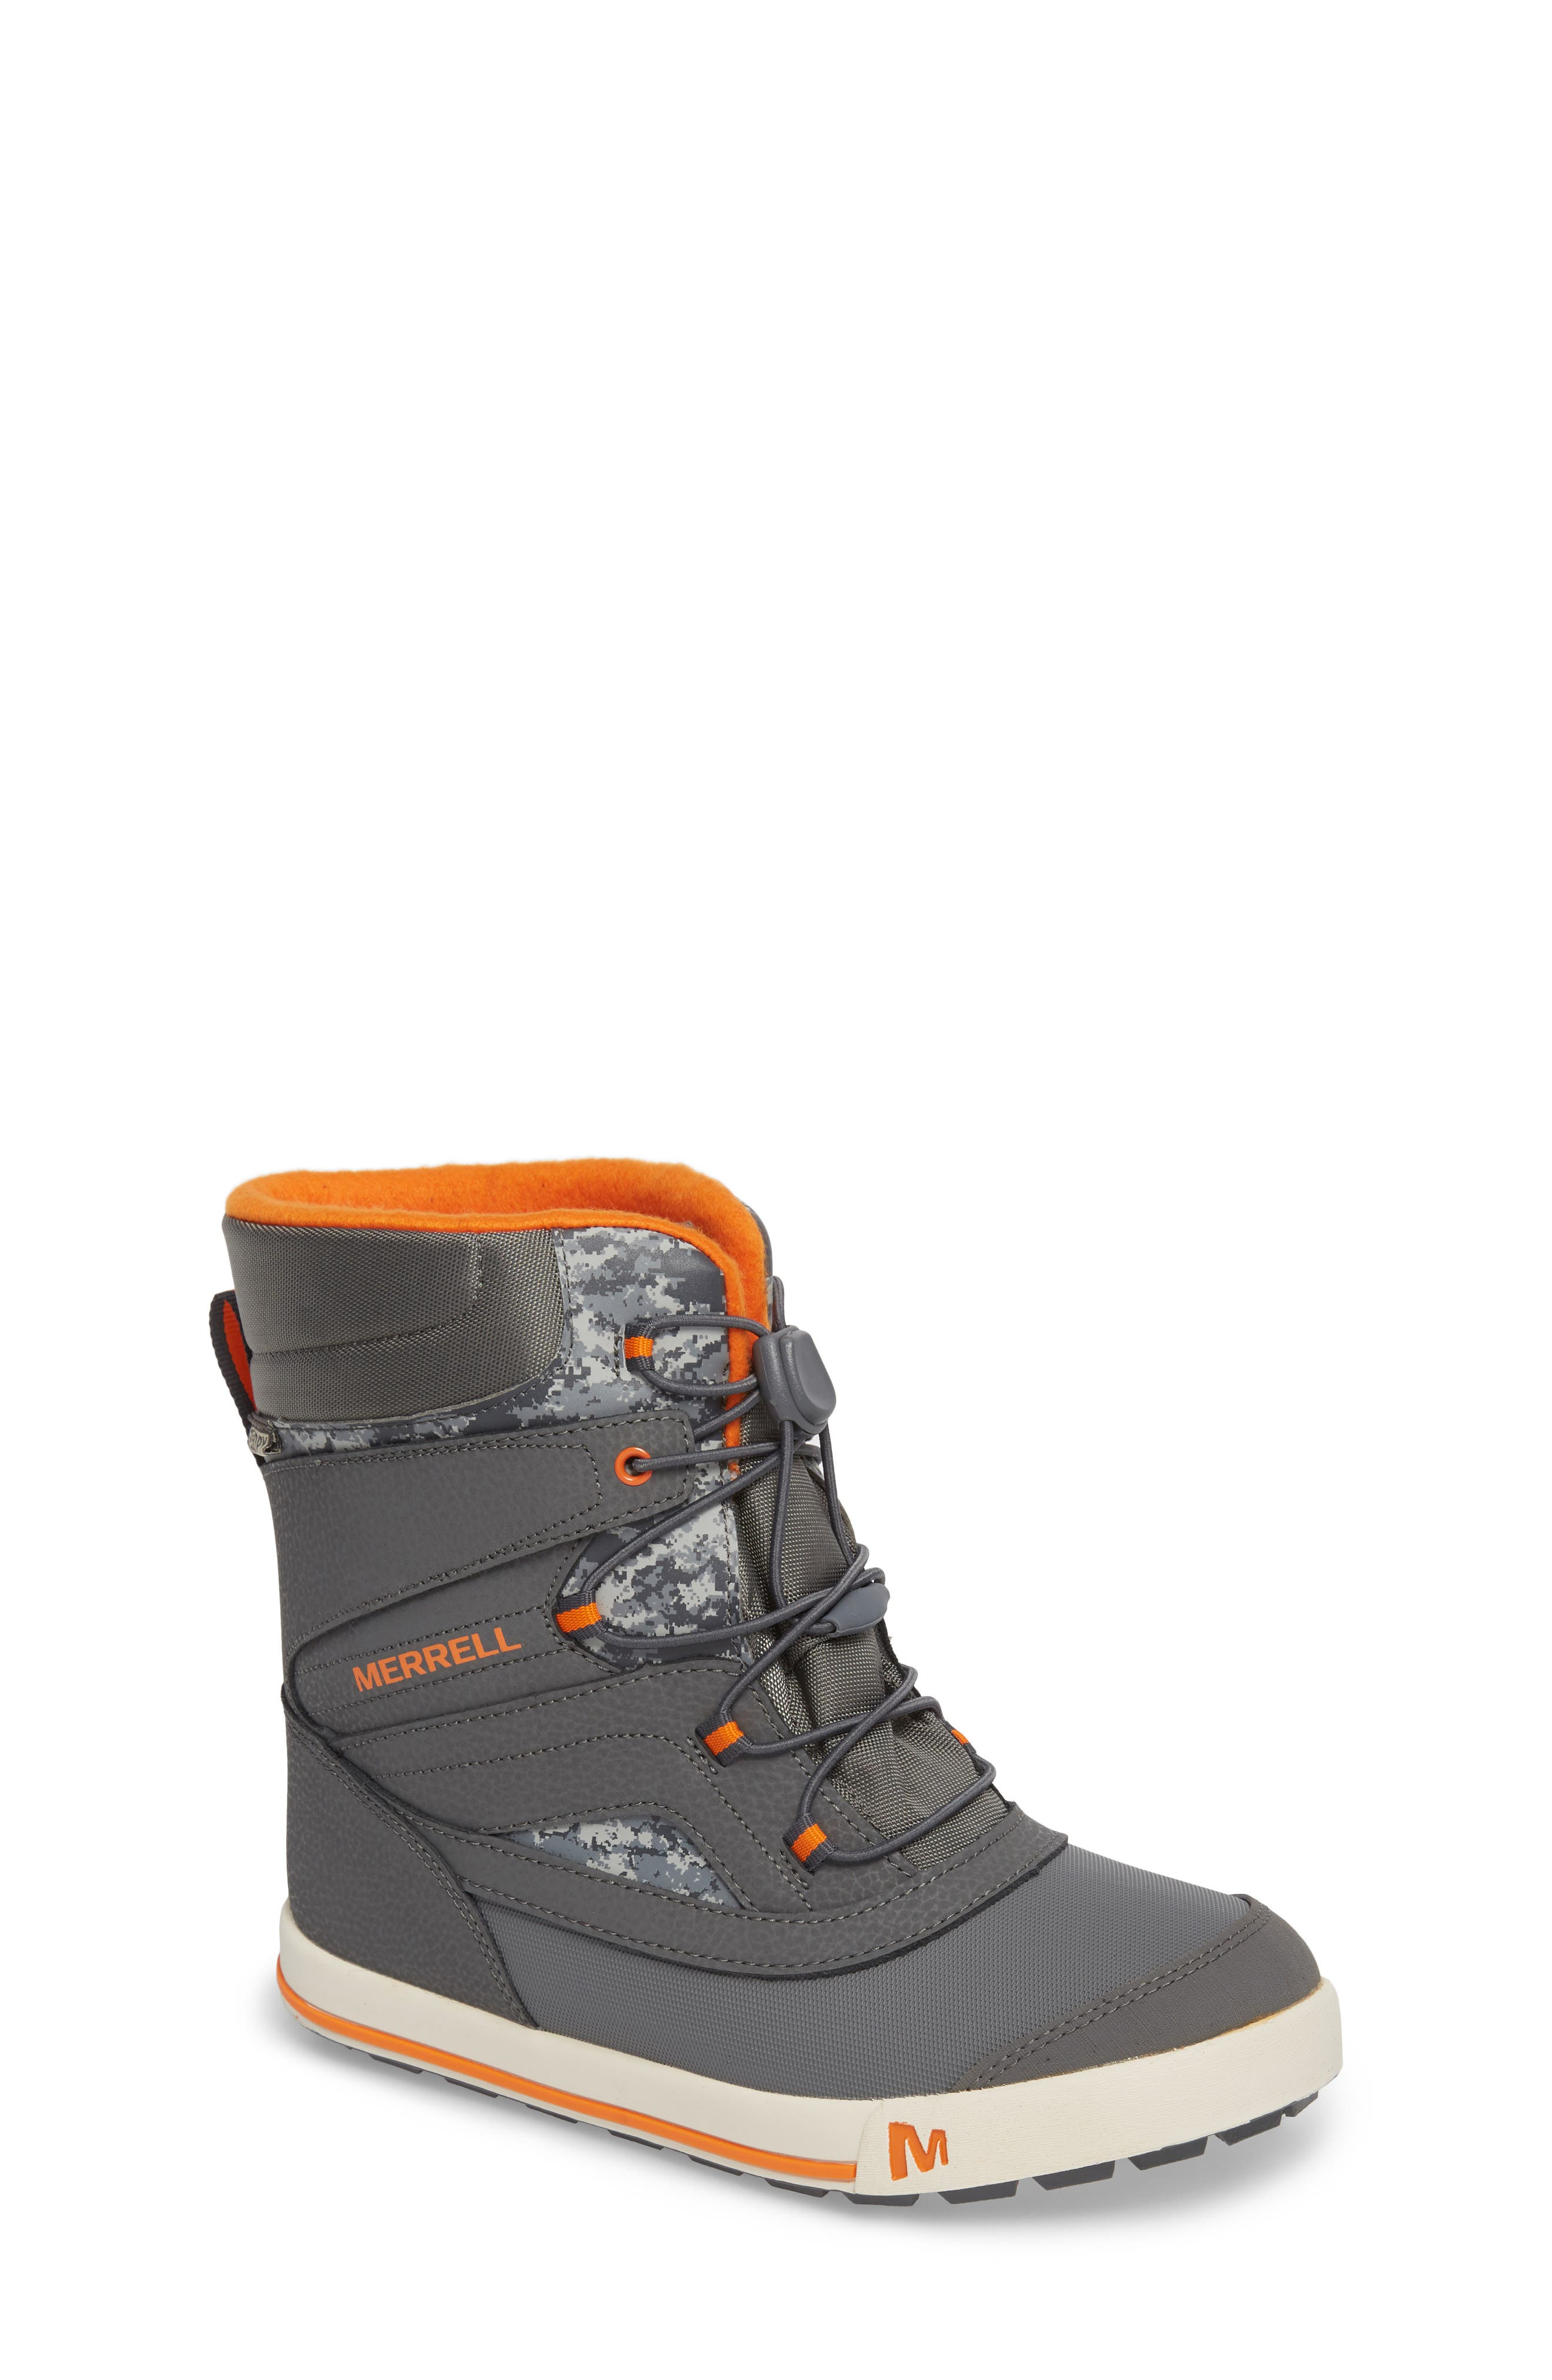 Snow Bank 2 Insulated Waterproof Boot,                             Main thumbnail 1, color,                             Grey/ Orange